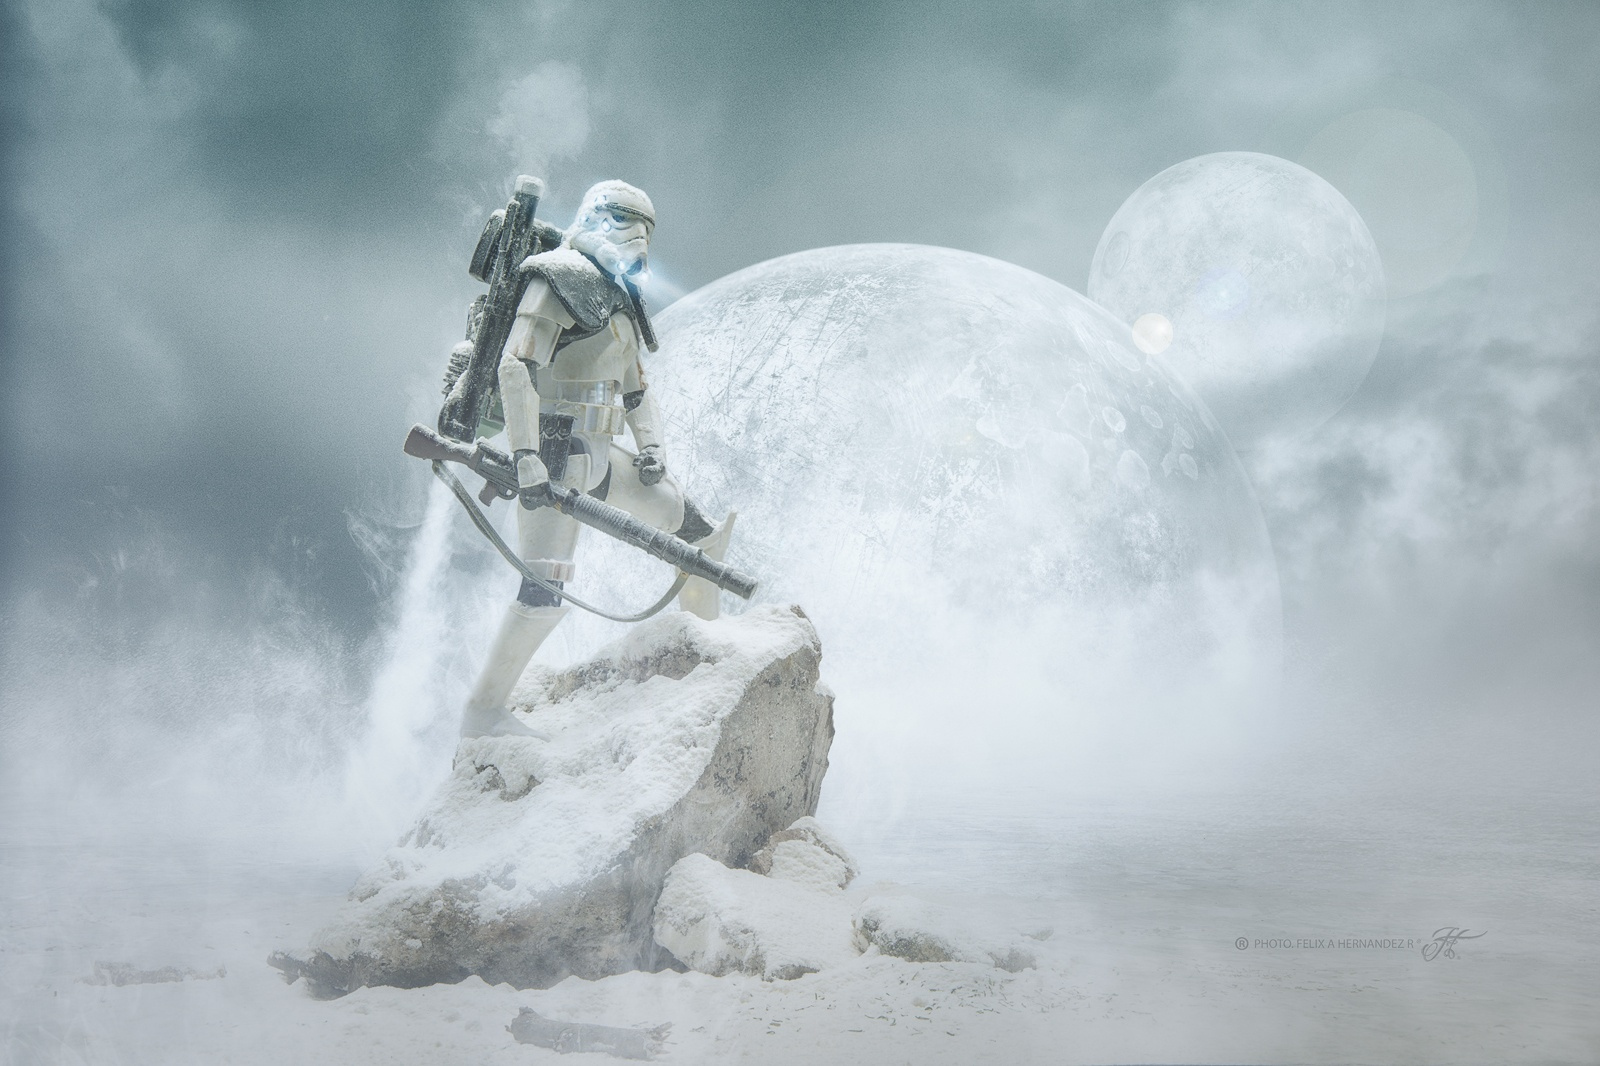 Capturing Epic Star Wars Scenes with Toy Stormtroopers